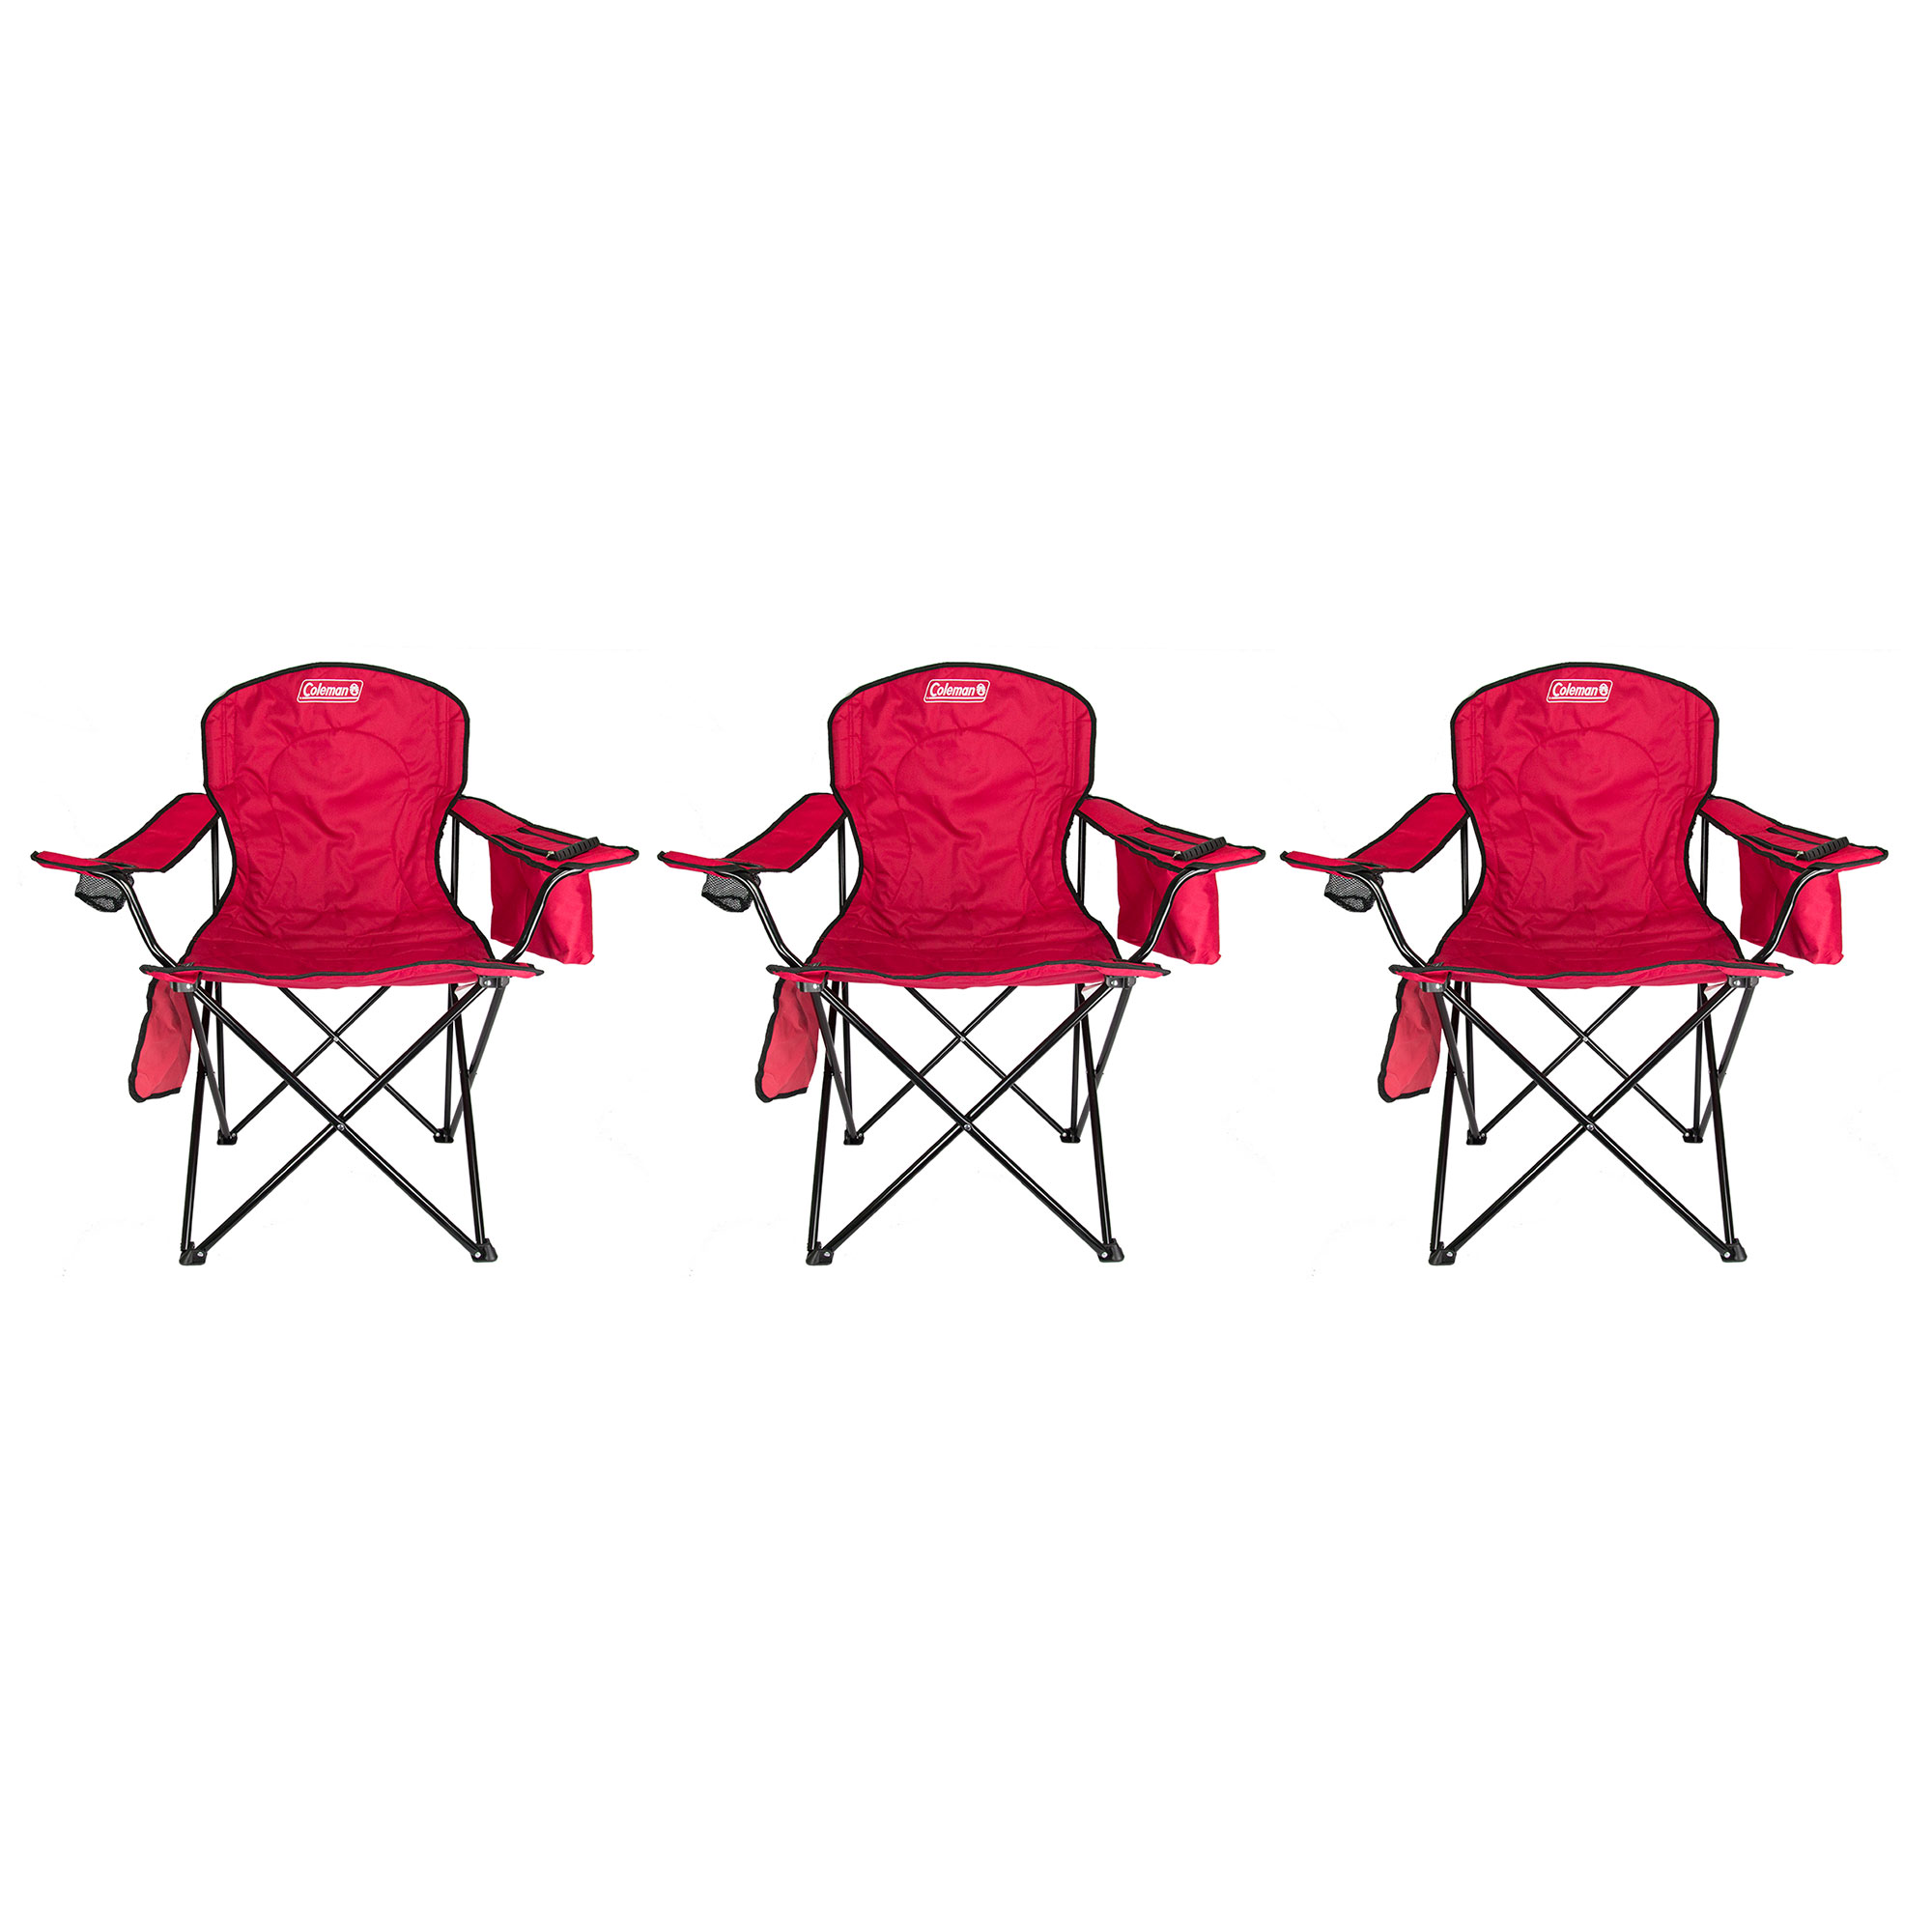 folding quad chair step 2 table and chairs coleman with built in cooler cup holder red 3 pack walmart com